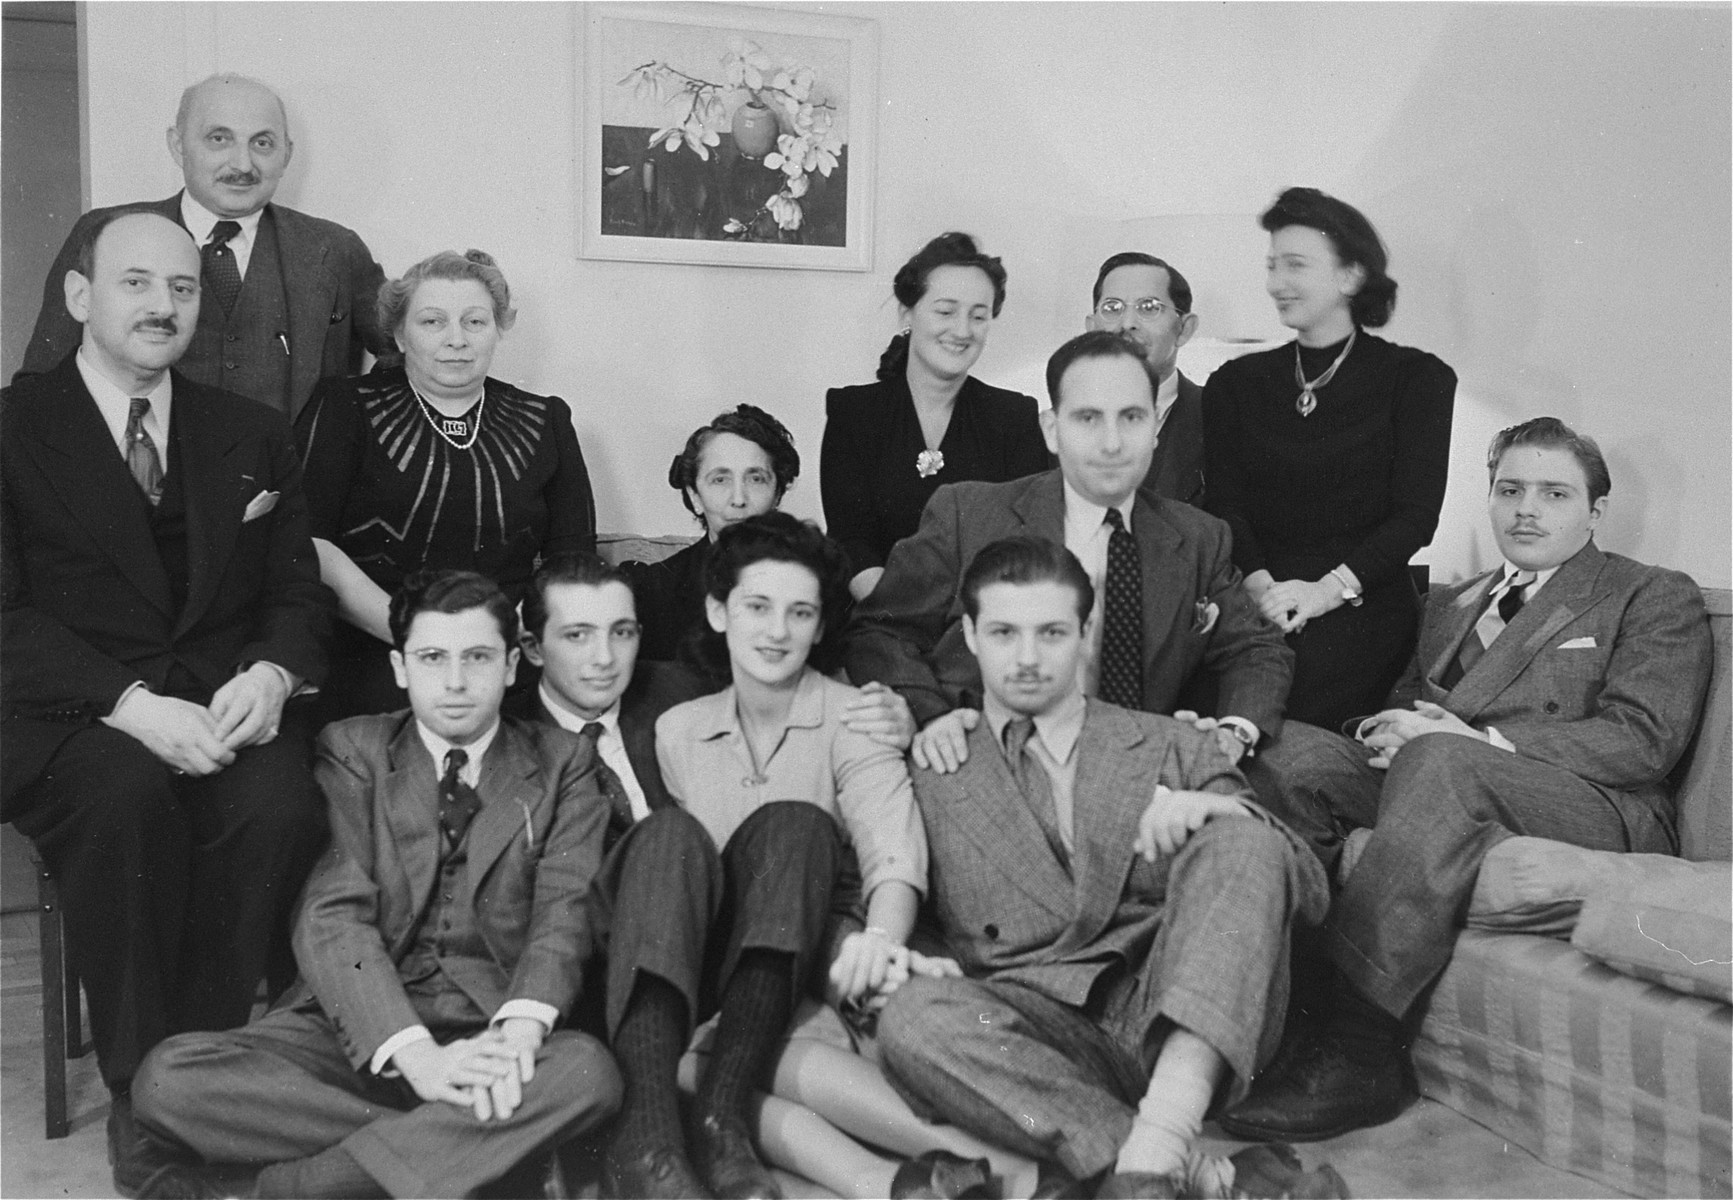 Group portrait of a family of Belgian Jewish refugees who found safe haven in the US during World War II.  Among those pictured are: Joseph and Deborah Friedmann (top row, left); William Friedman and Helene Ginsburg (front row, right); and Margot Soldinger, (Helene's sister, standing in the middle).